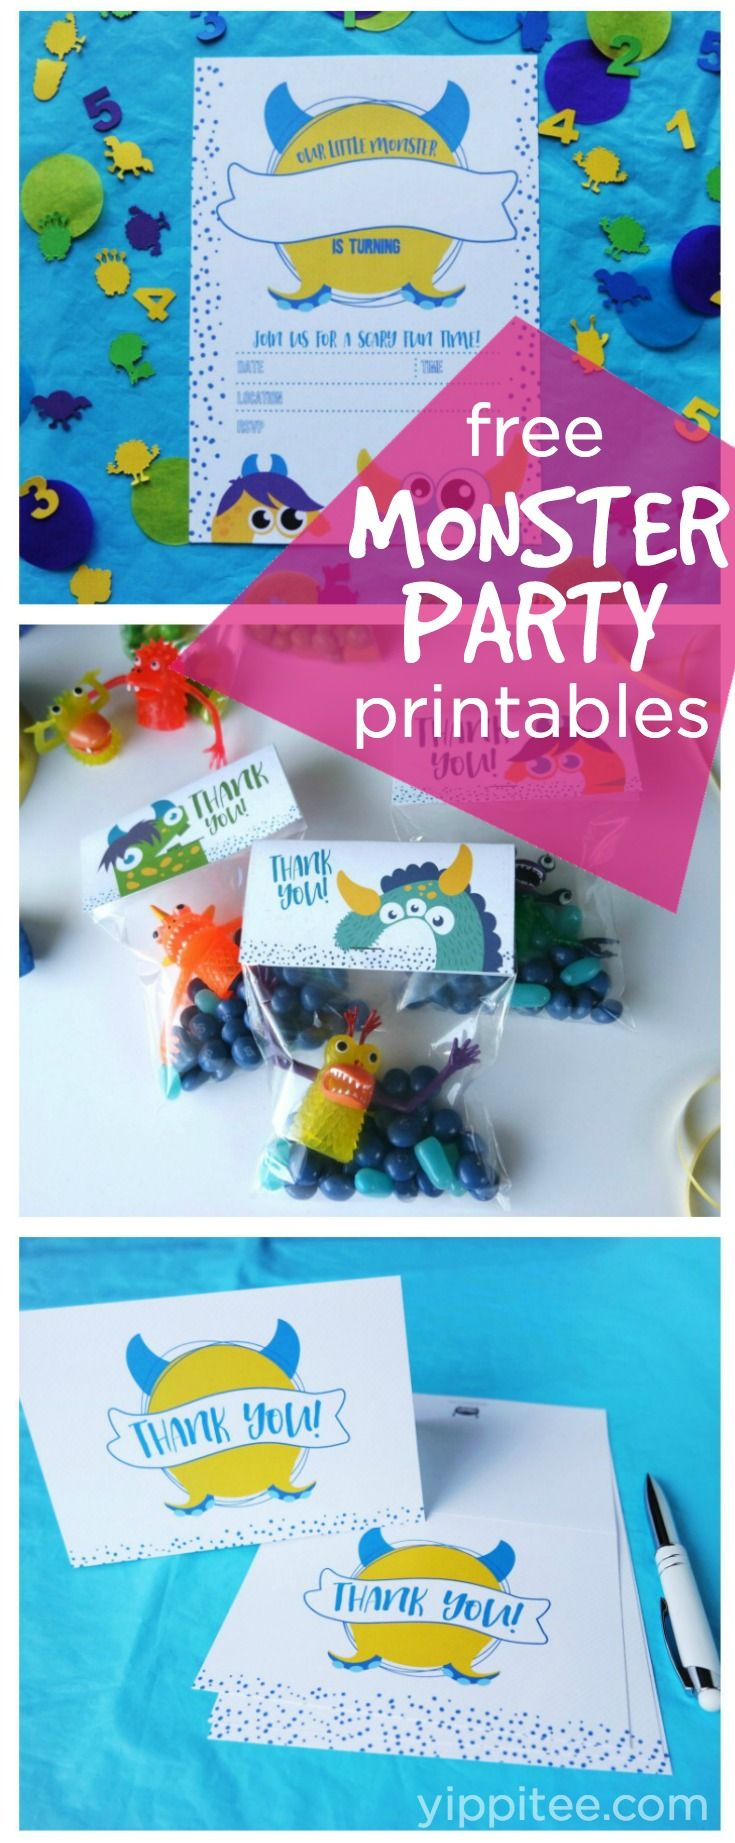 Monster Birthday Party Printables - free invite, party favor, and thank you card downloads